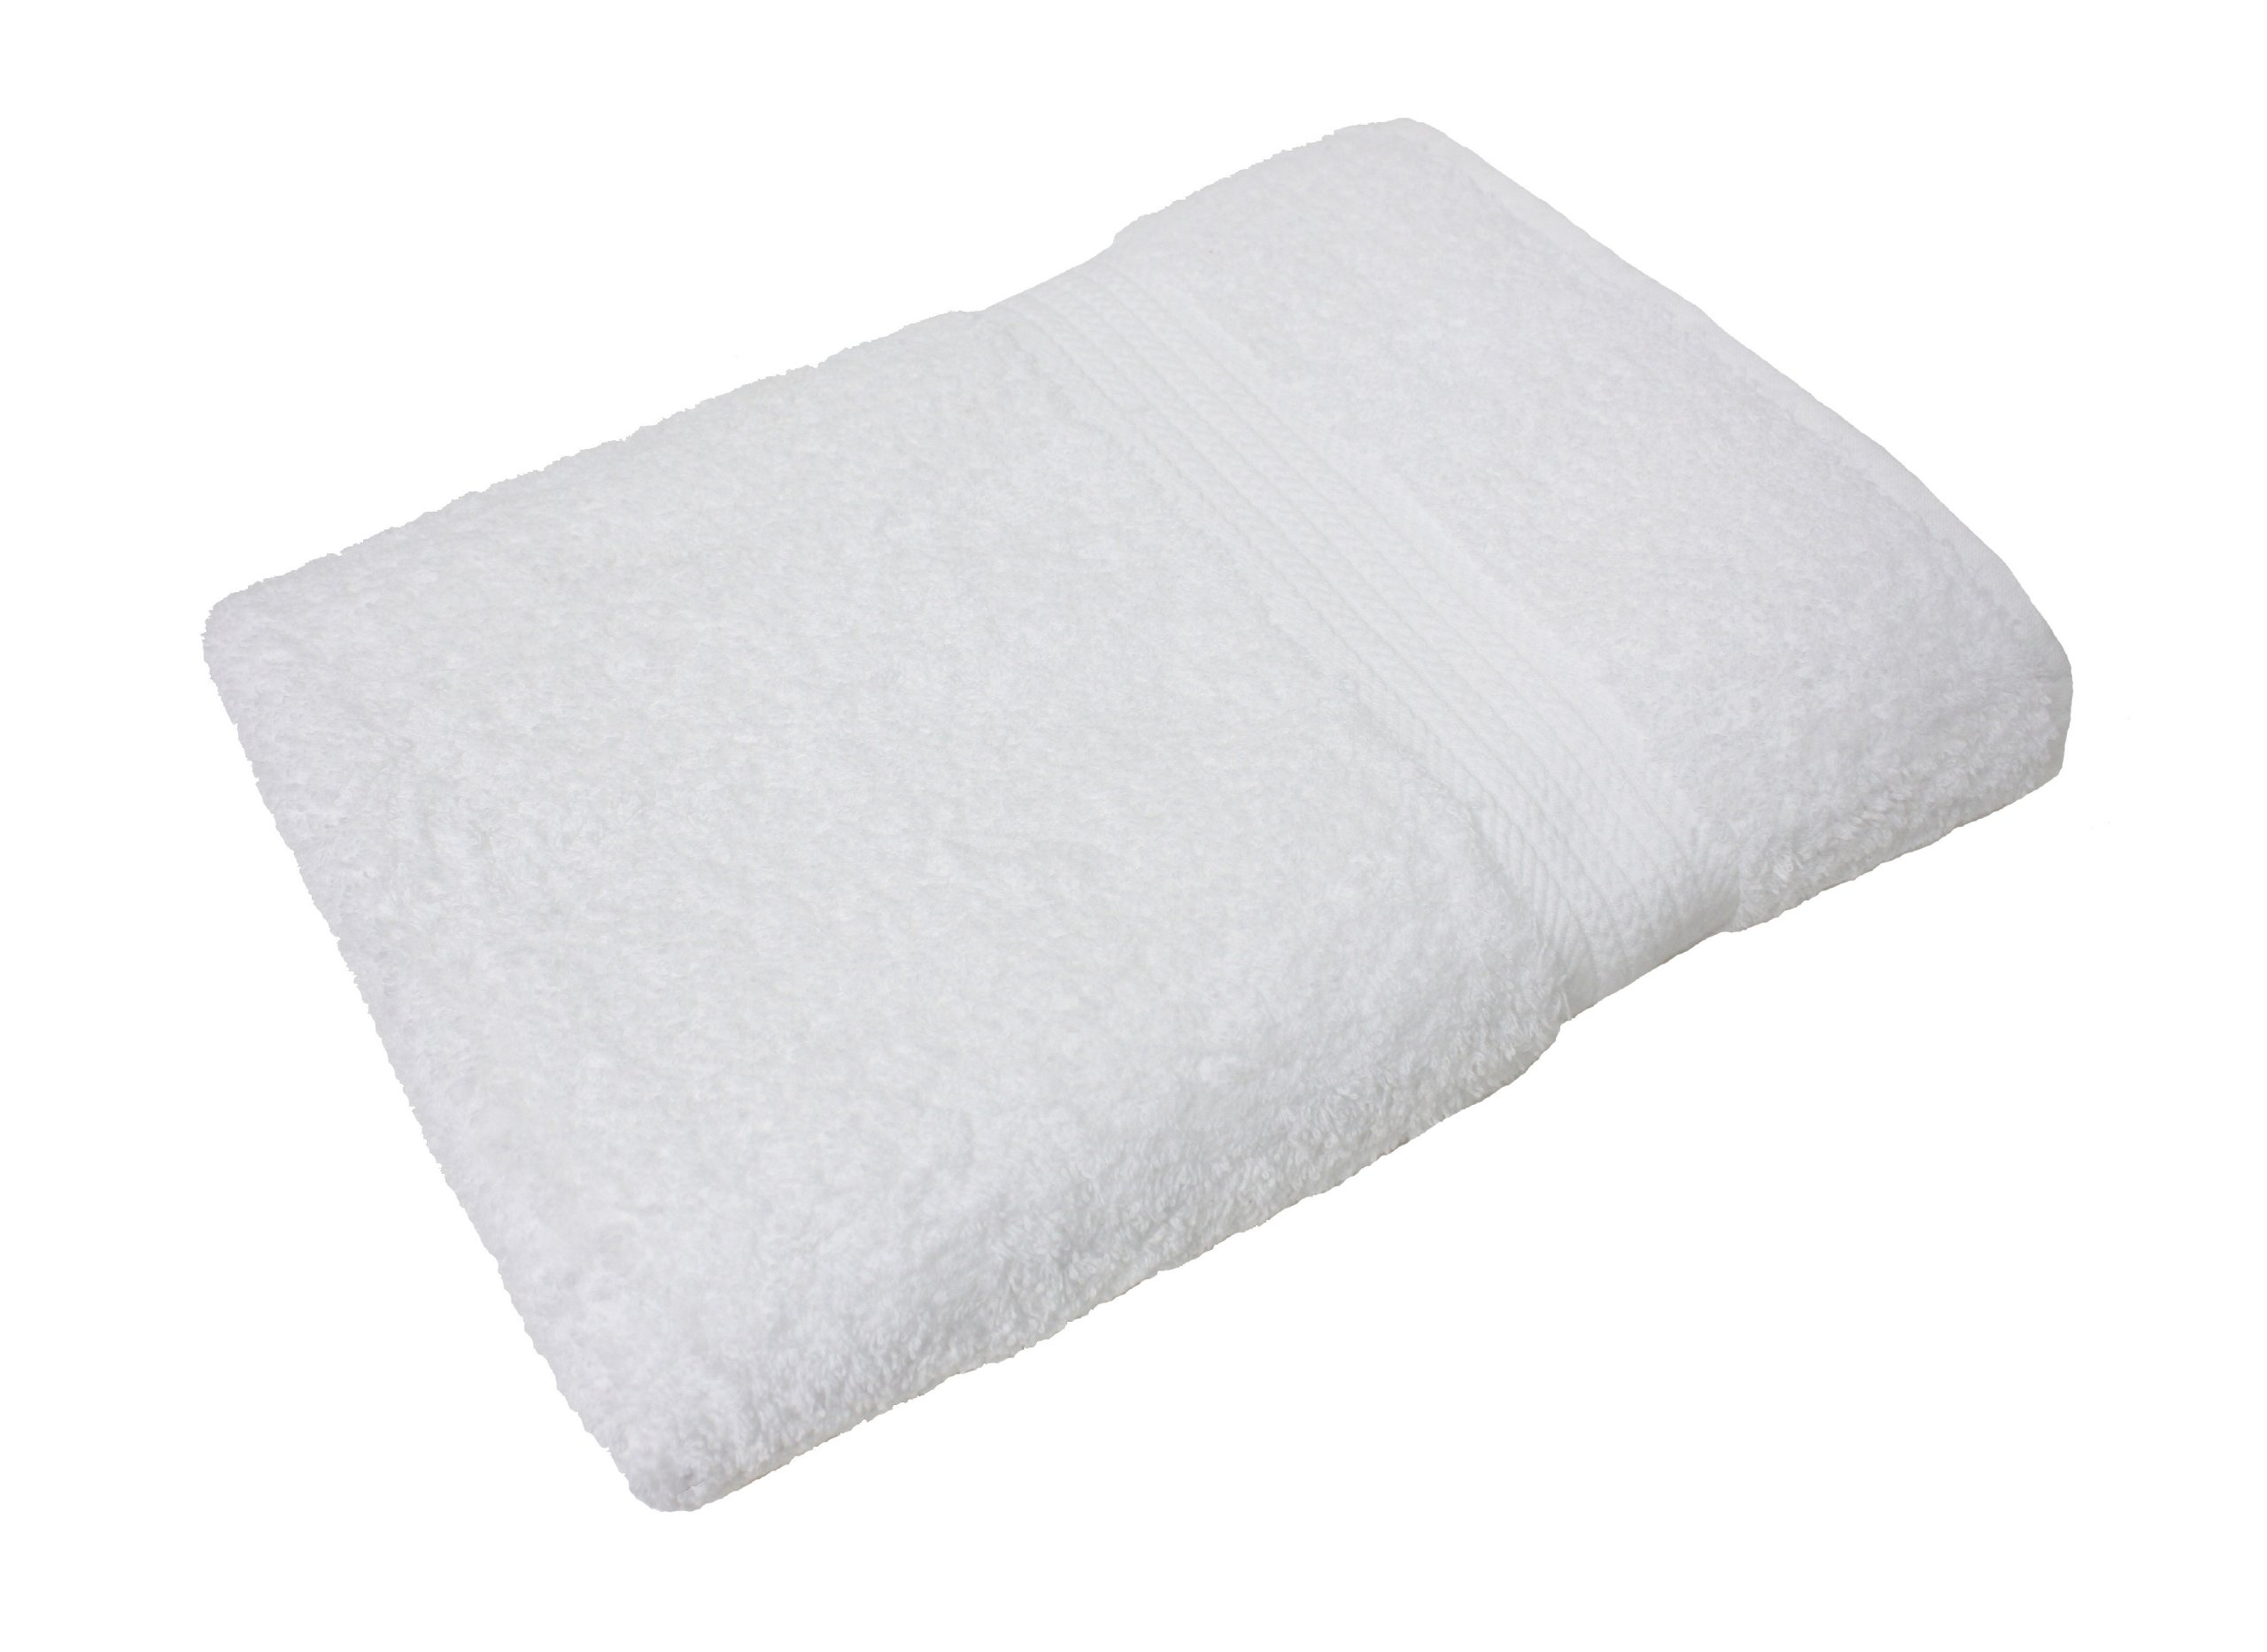 J&M Home Fashions Oversized Extra Large Cotton Bath Towel, 30x60, Hotel & Spa Quality, Super Soft and Ultra Absorbent for Bathroom & Washroom-White